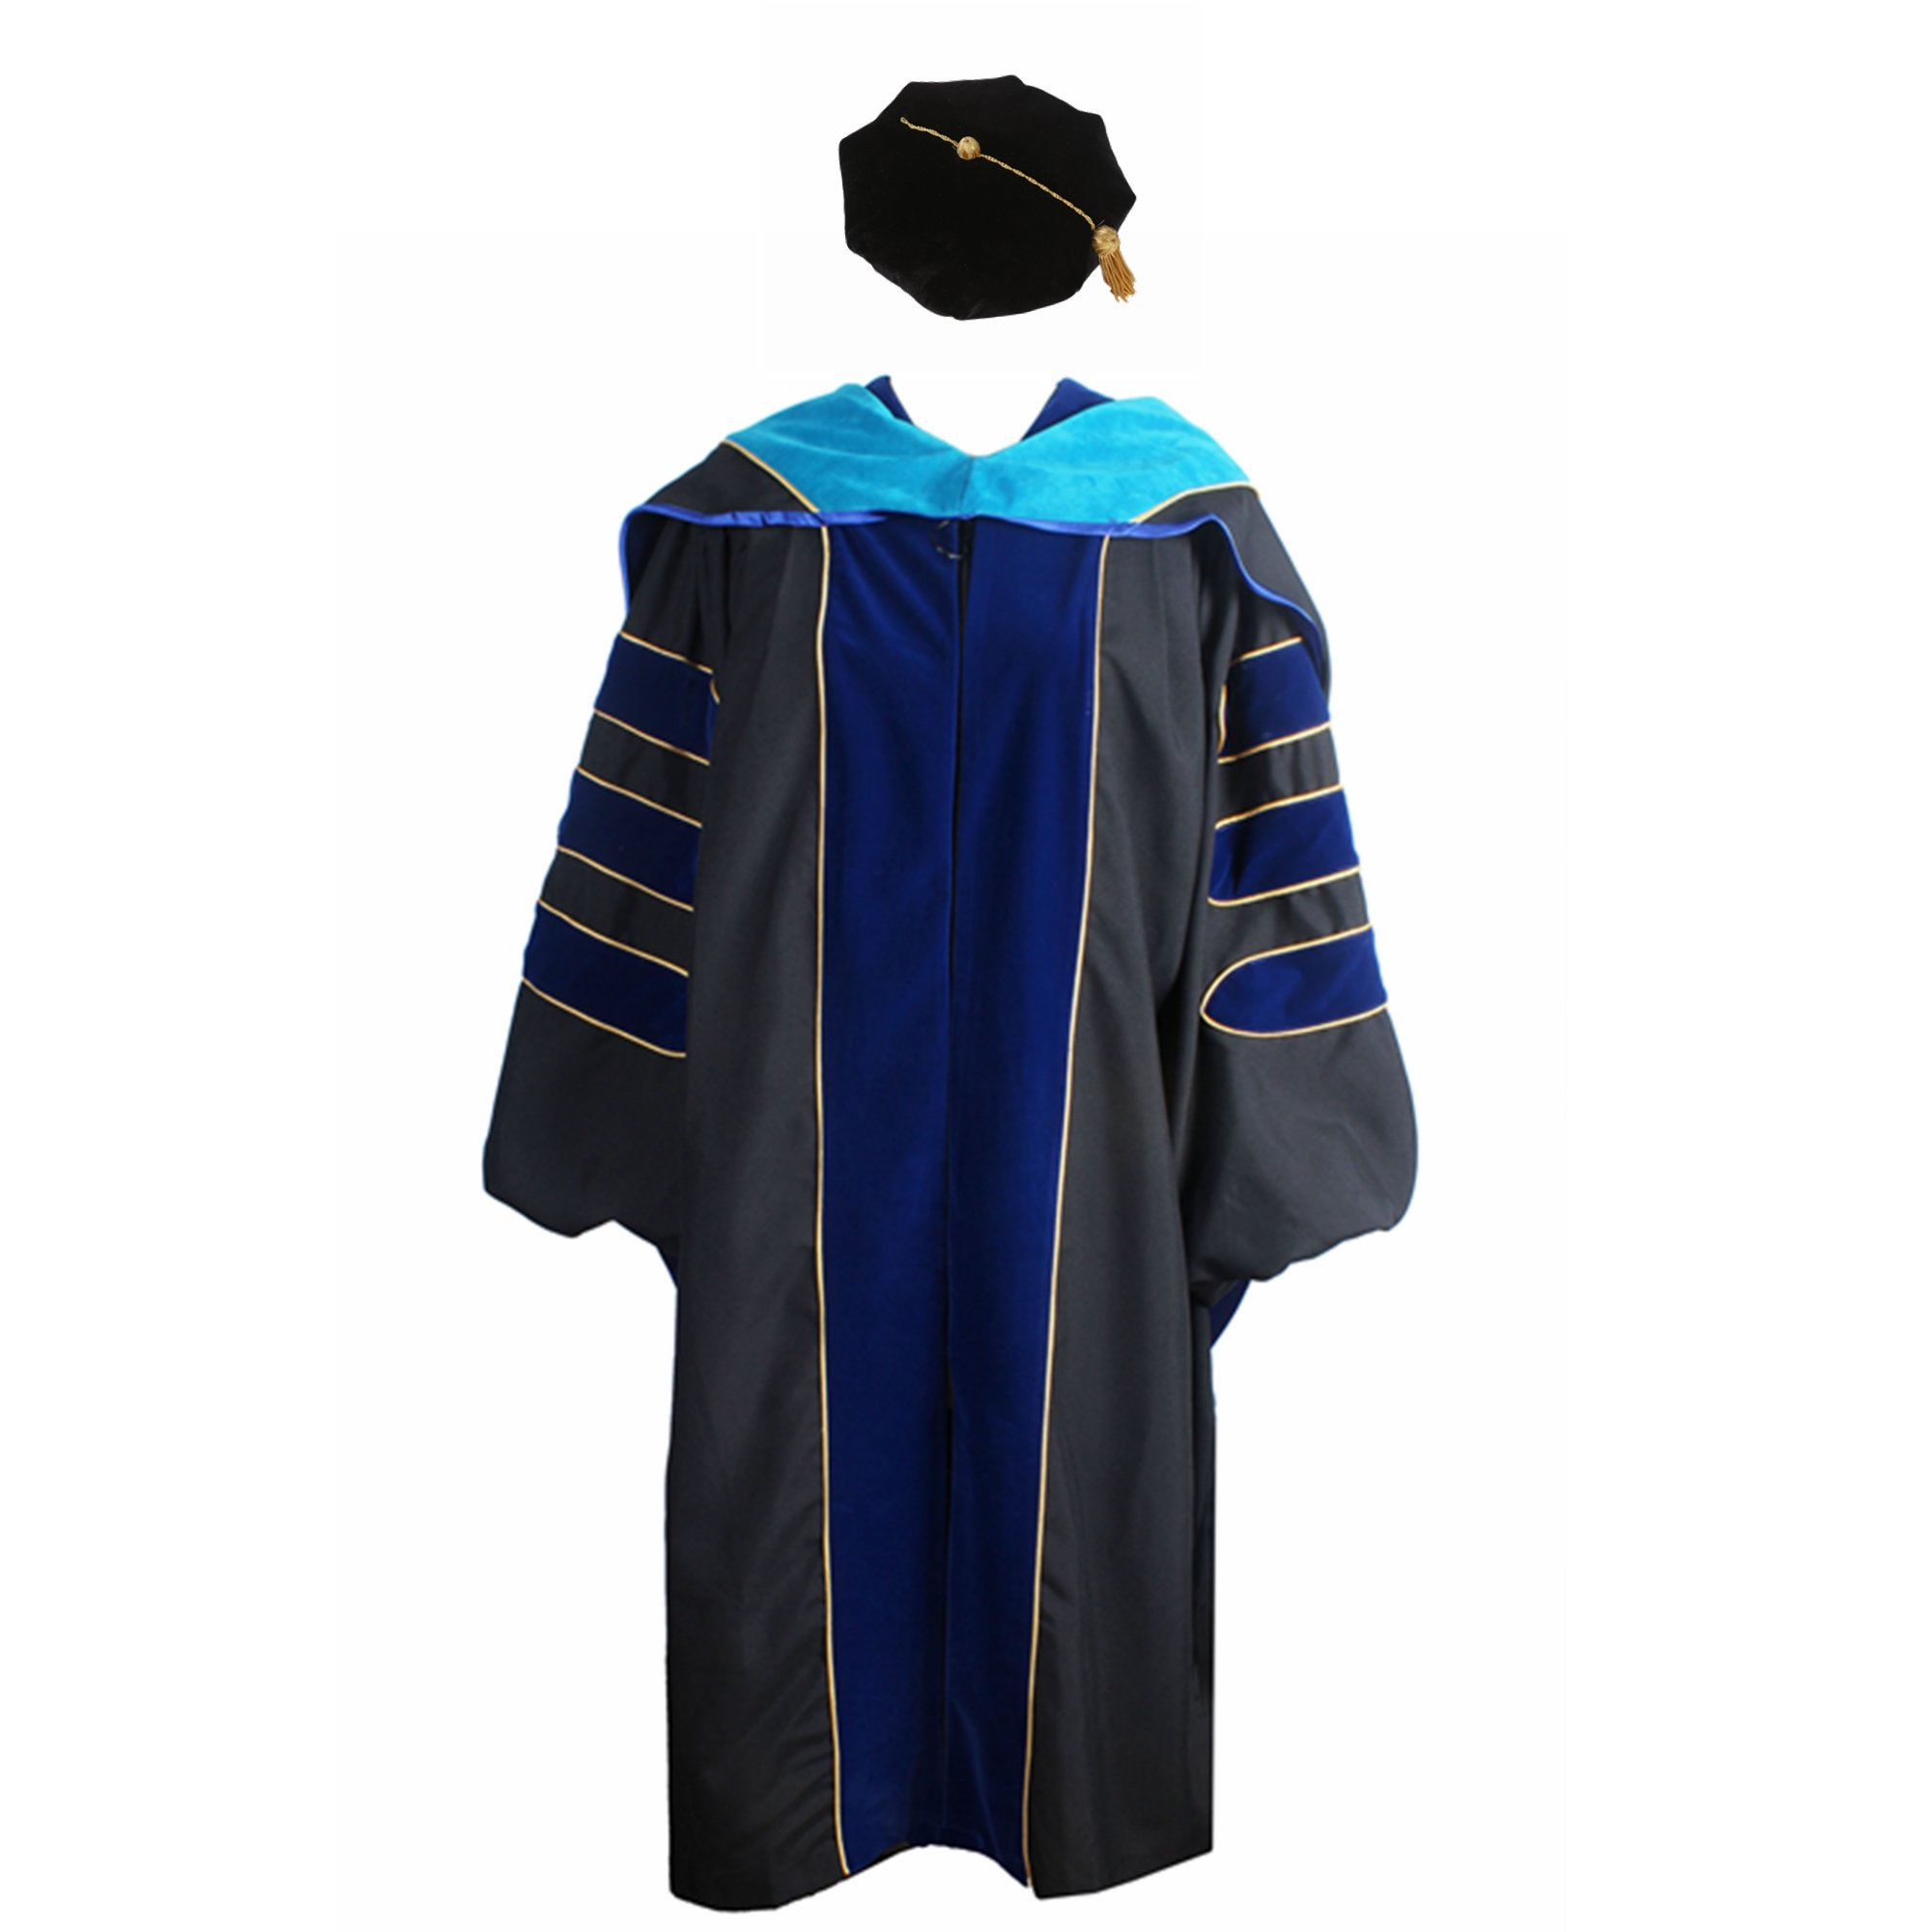 GraduationService Deluxe Doctoral Graduation Gown,Hood and Tam Package Unisex by GraduationService